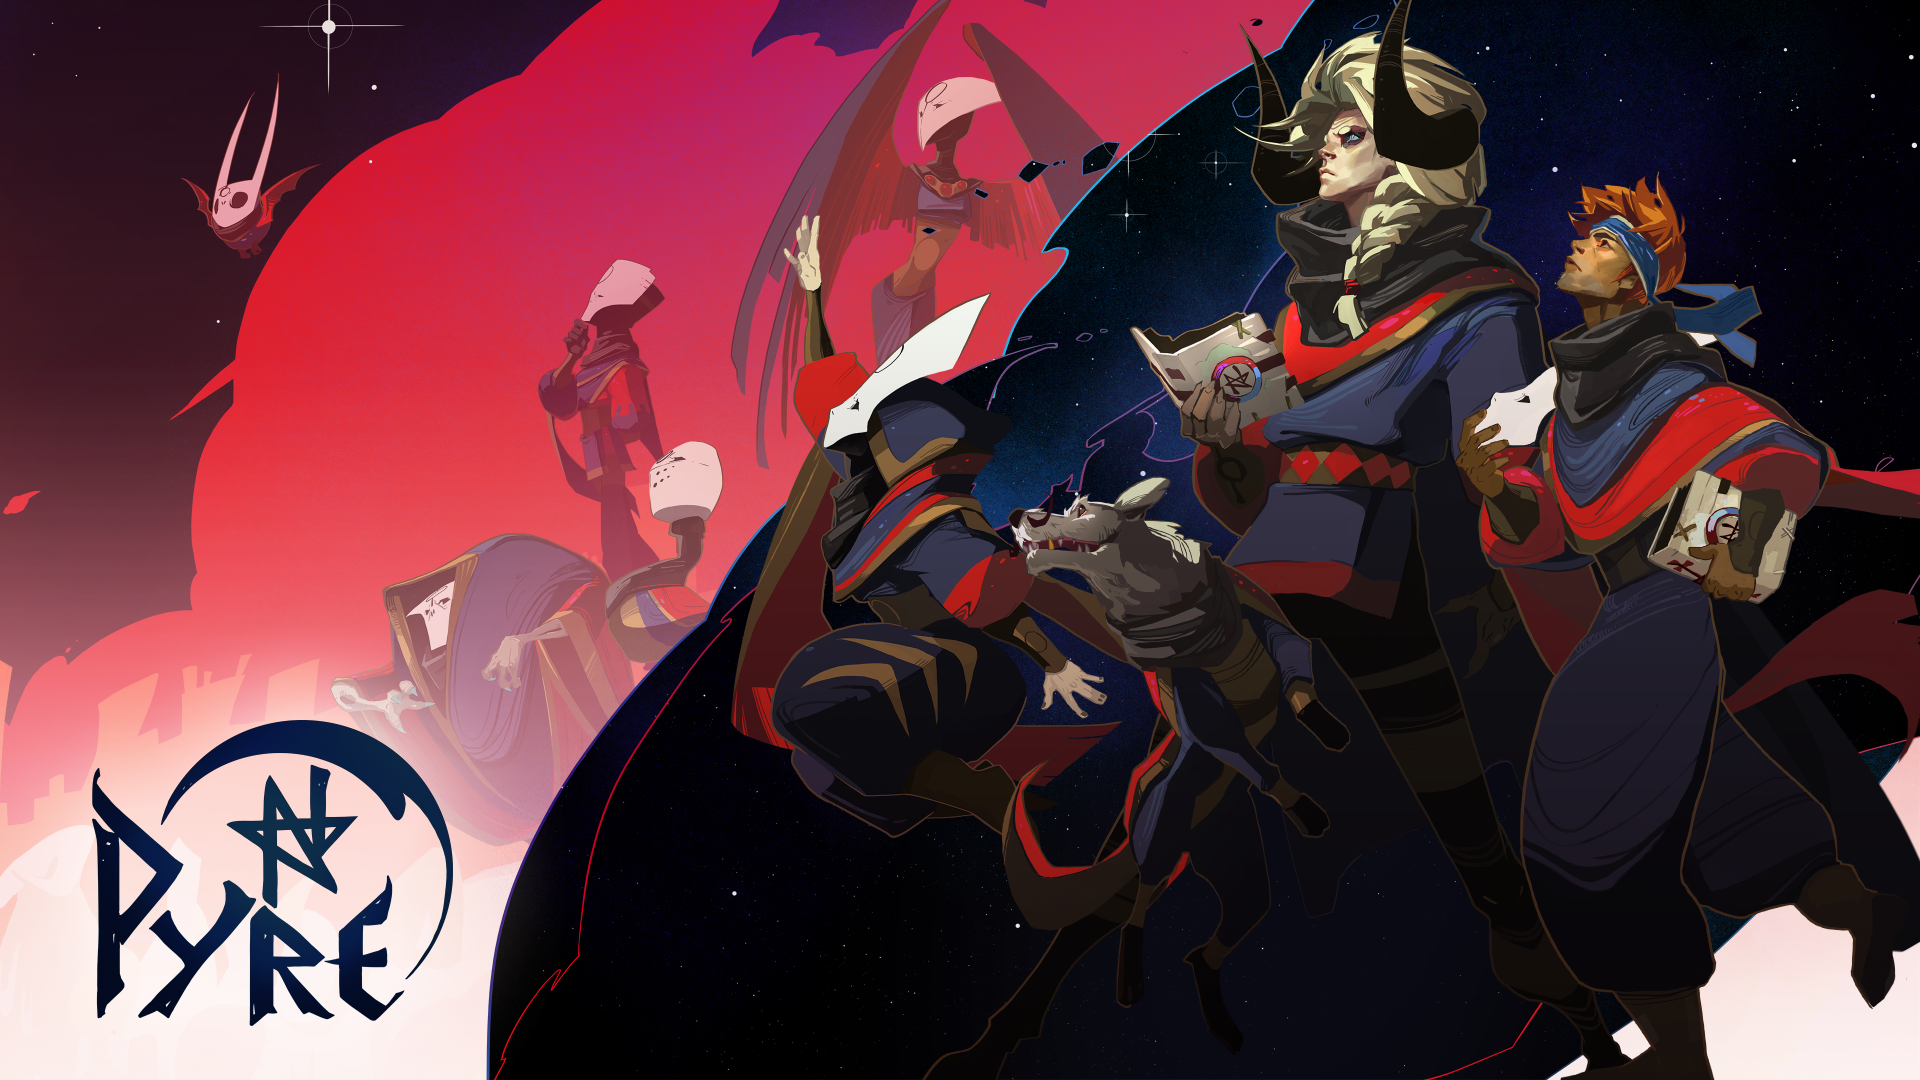 Pyre_4K_01.png?w=1920&q=80